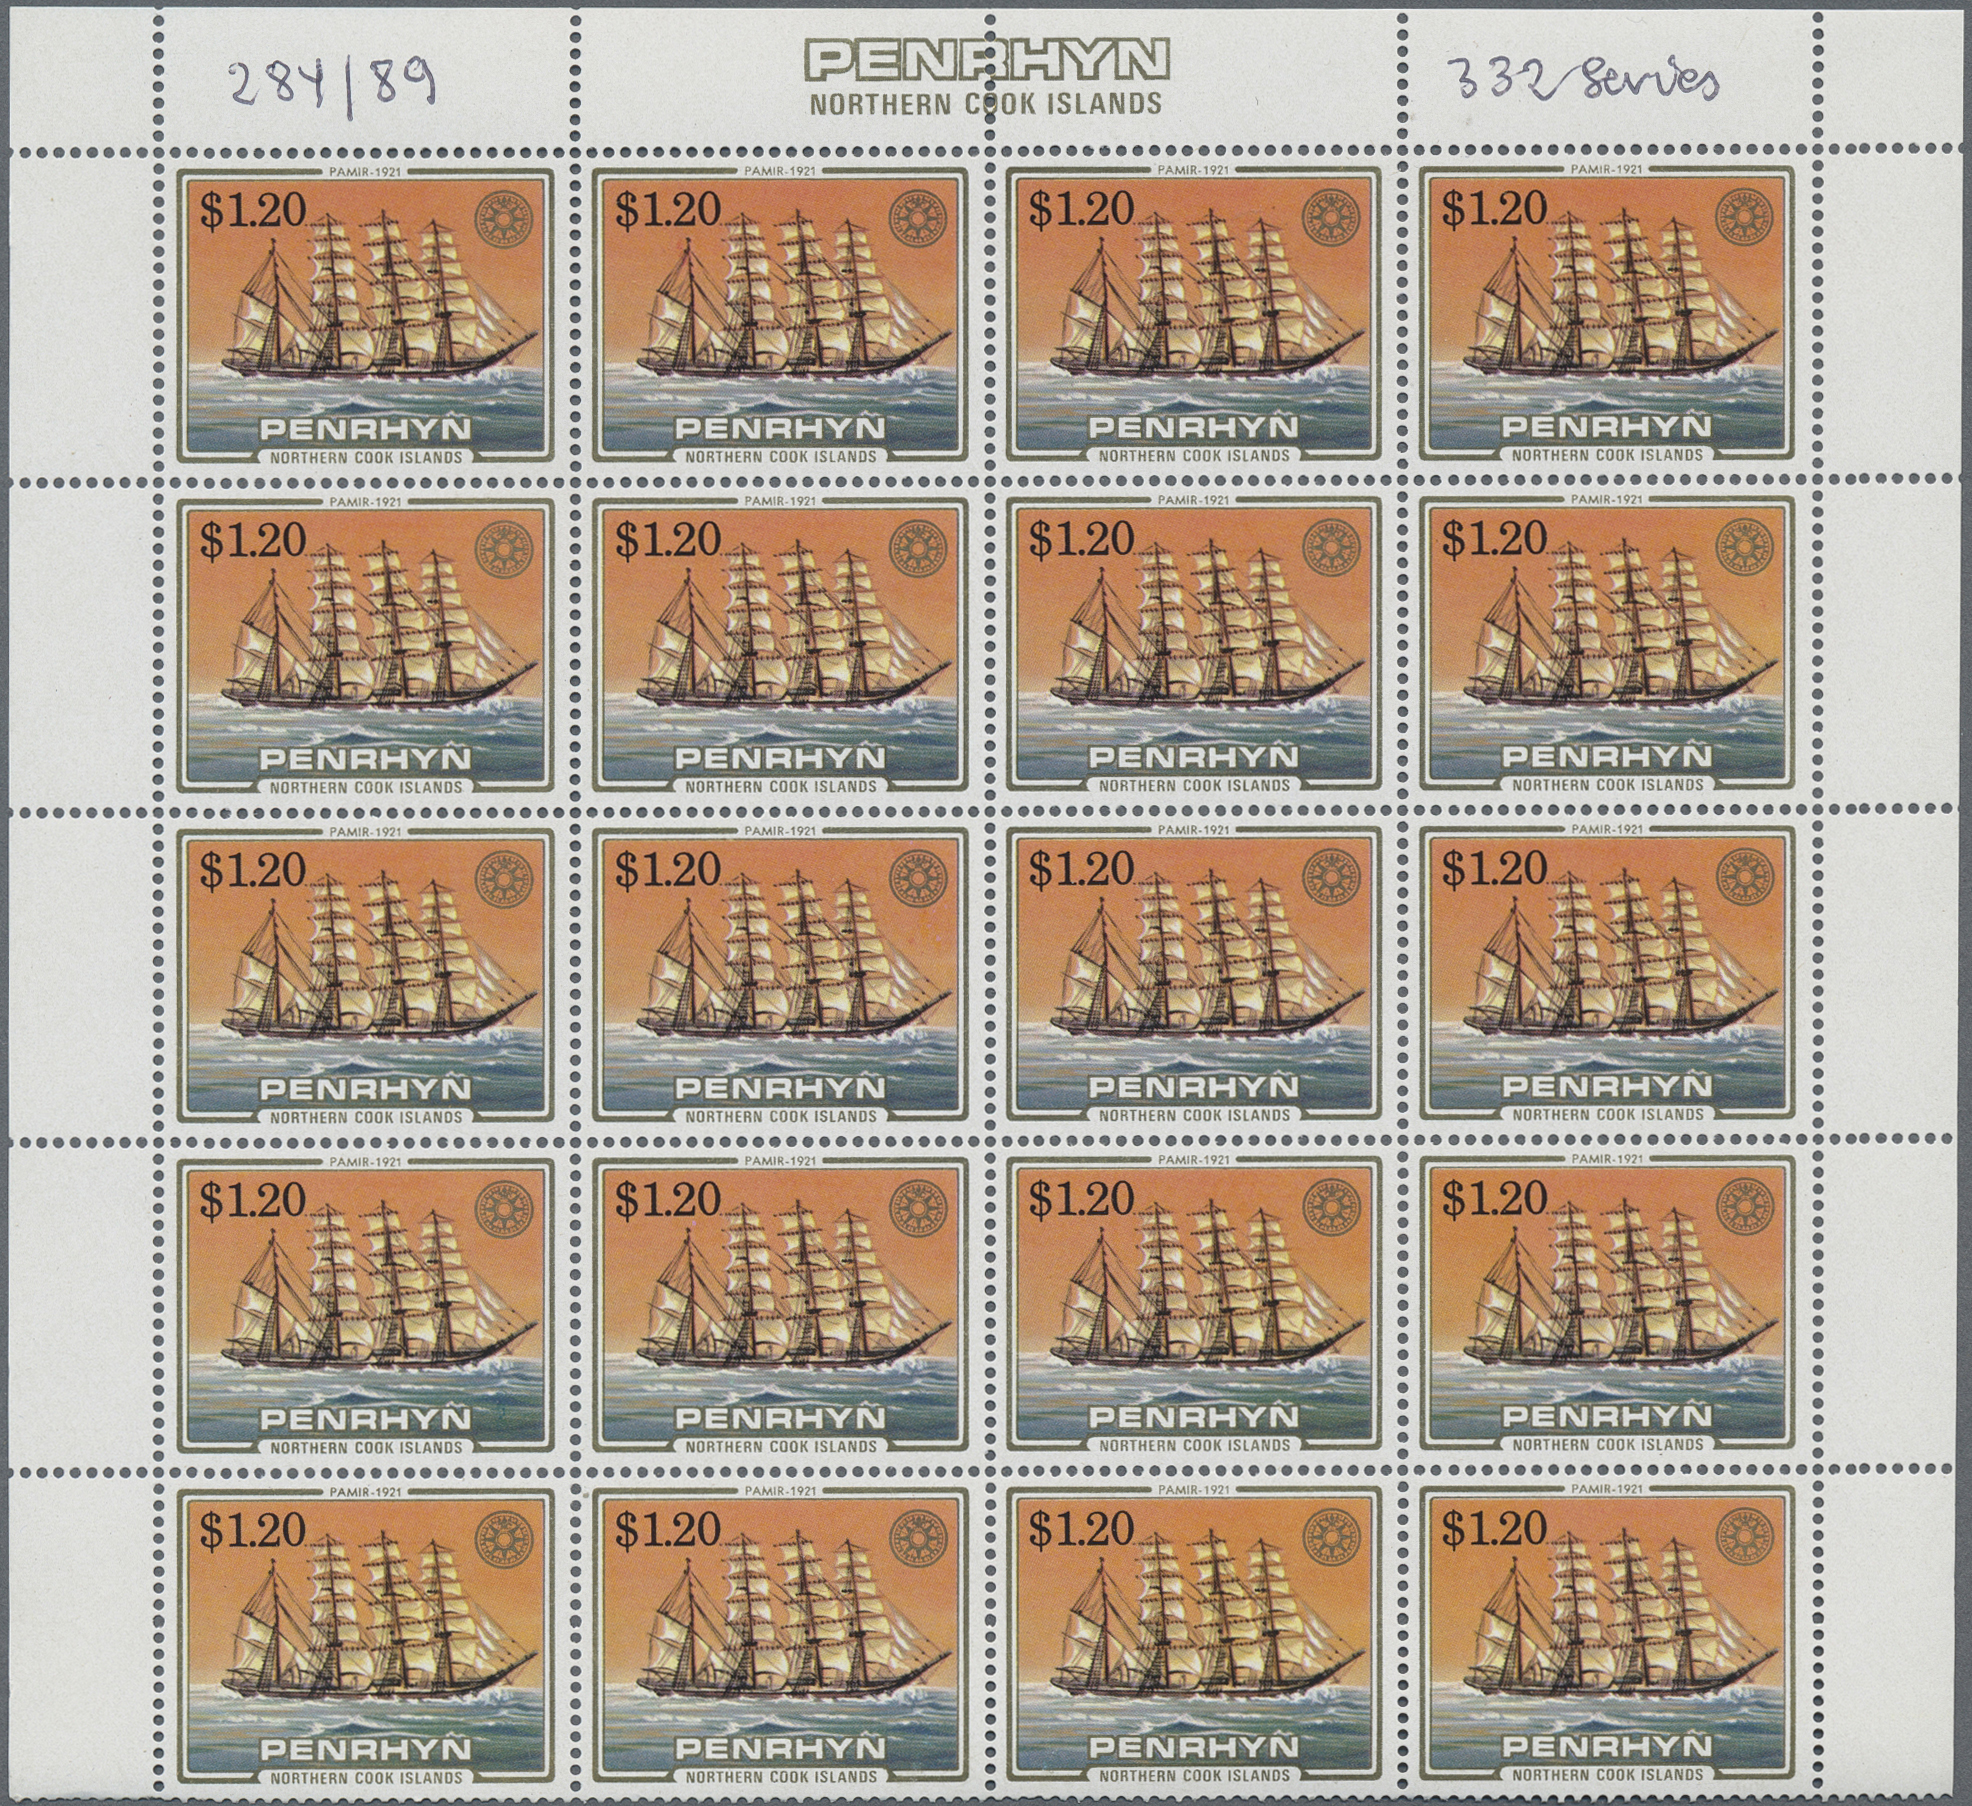 Lot 29525 - penrhyn  -  Auktionshaus Christoph Gärtner GmbH & Co. KG Auction #40 Collections Germany, Wunderkartons